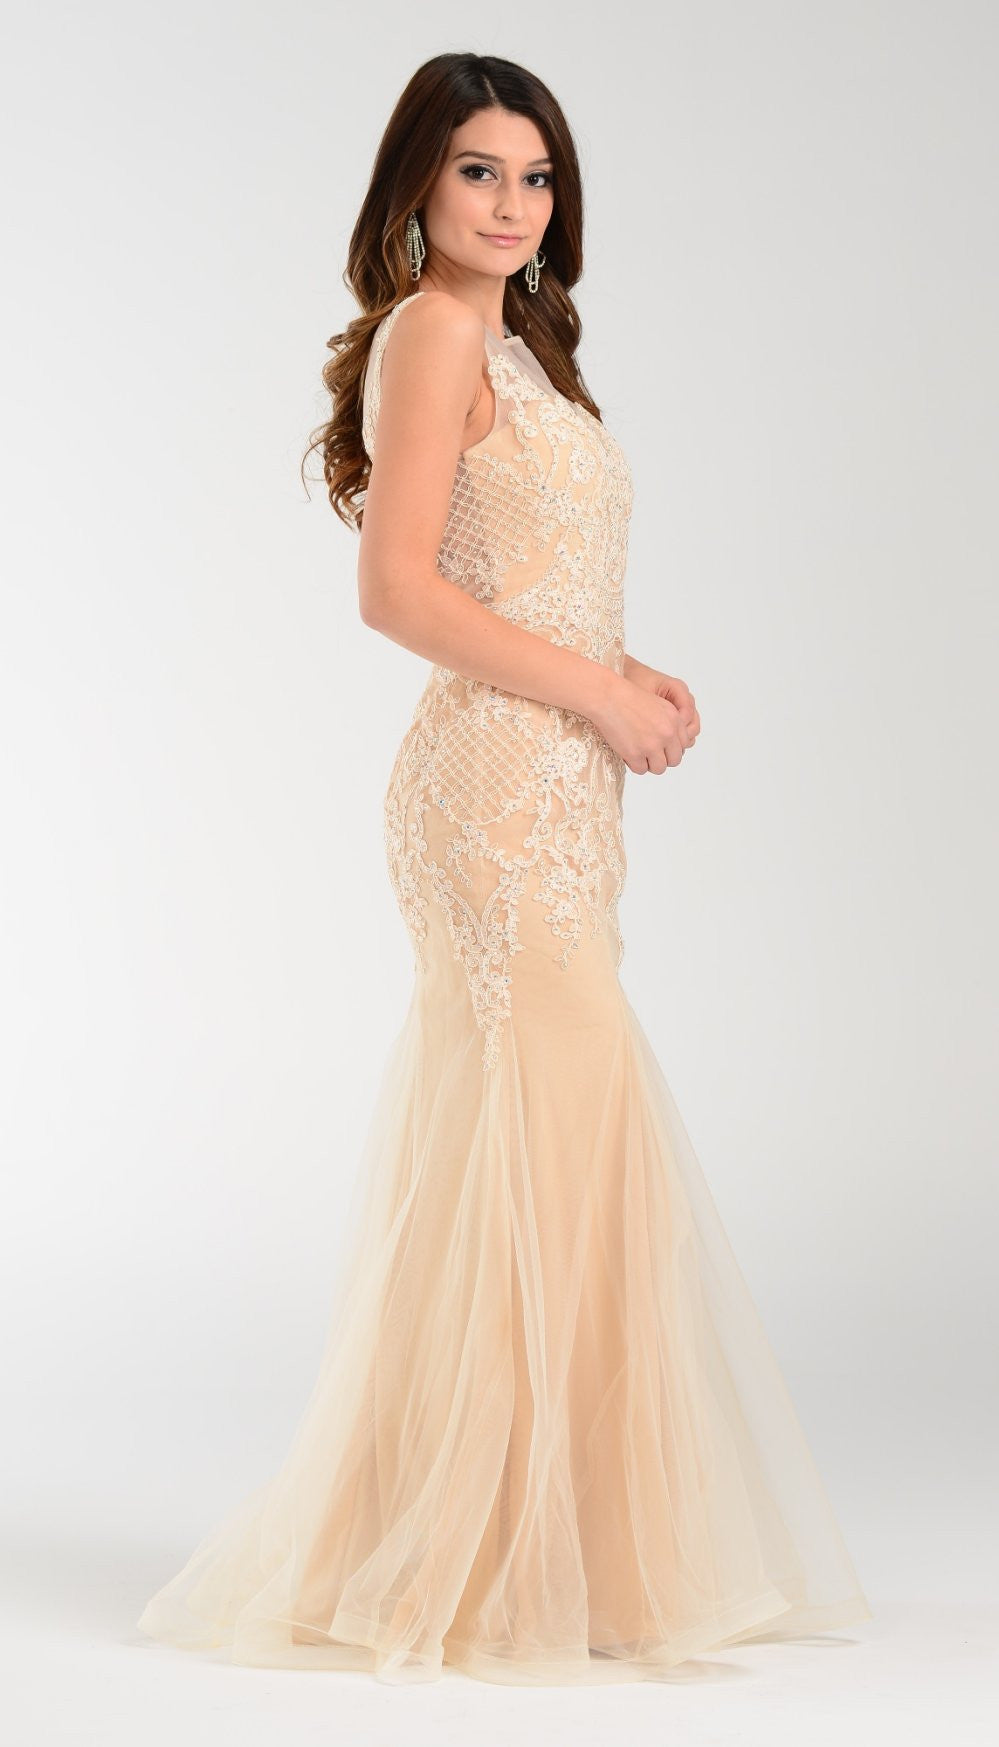 Poly USA 7338 Mermaid Silouette Prom Dress Champagne Sheer Neck